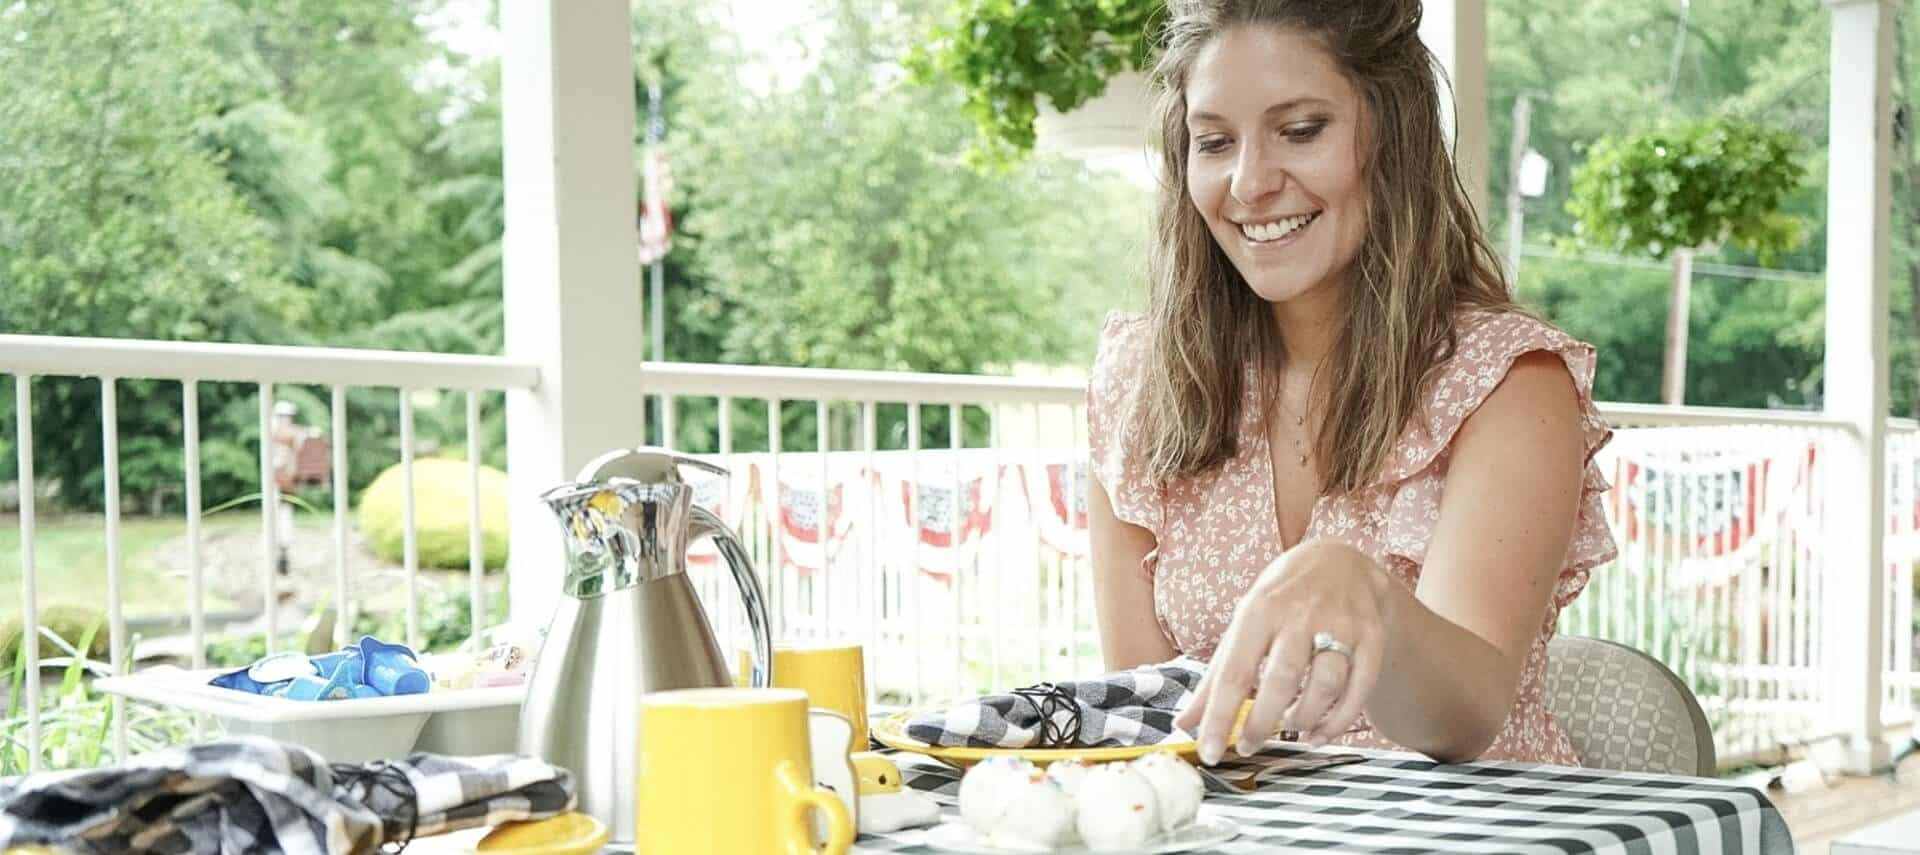 Woman smiling at a table for two on an outdoor patio next to a white railing with trees in the background